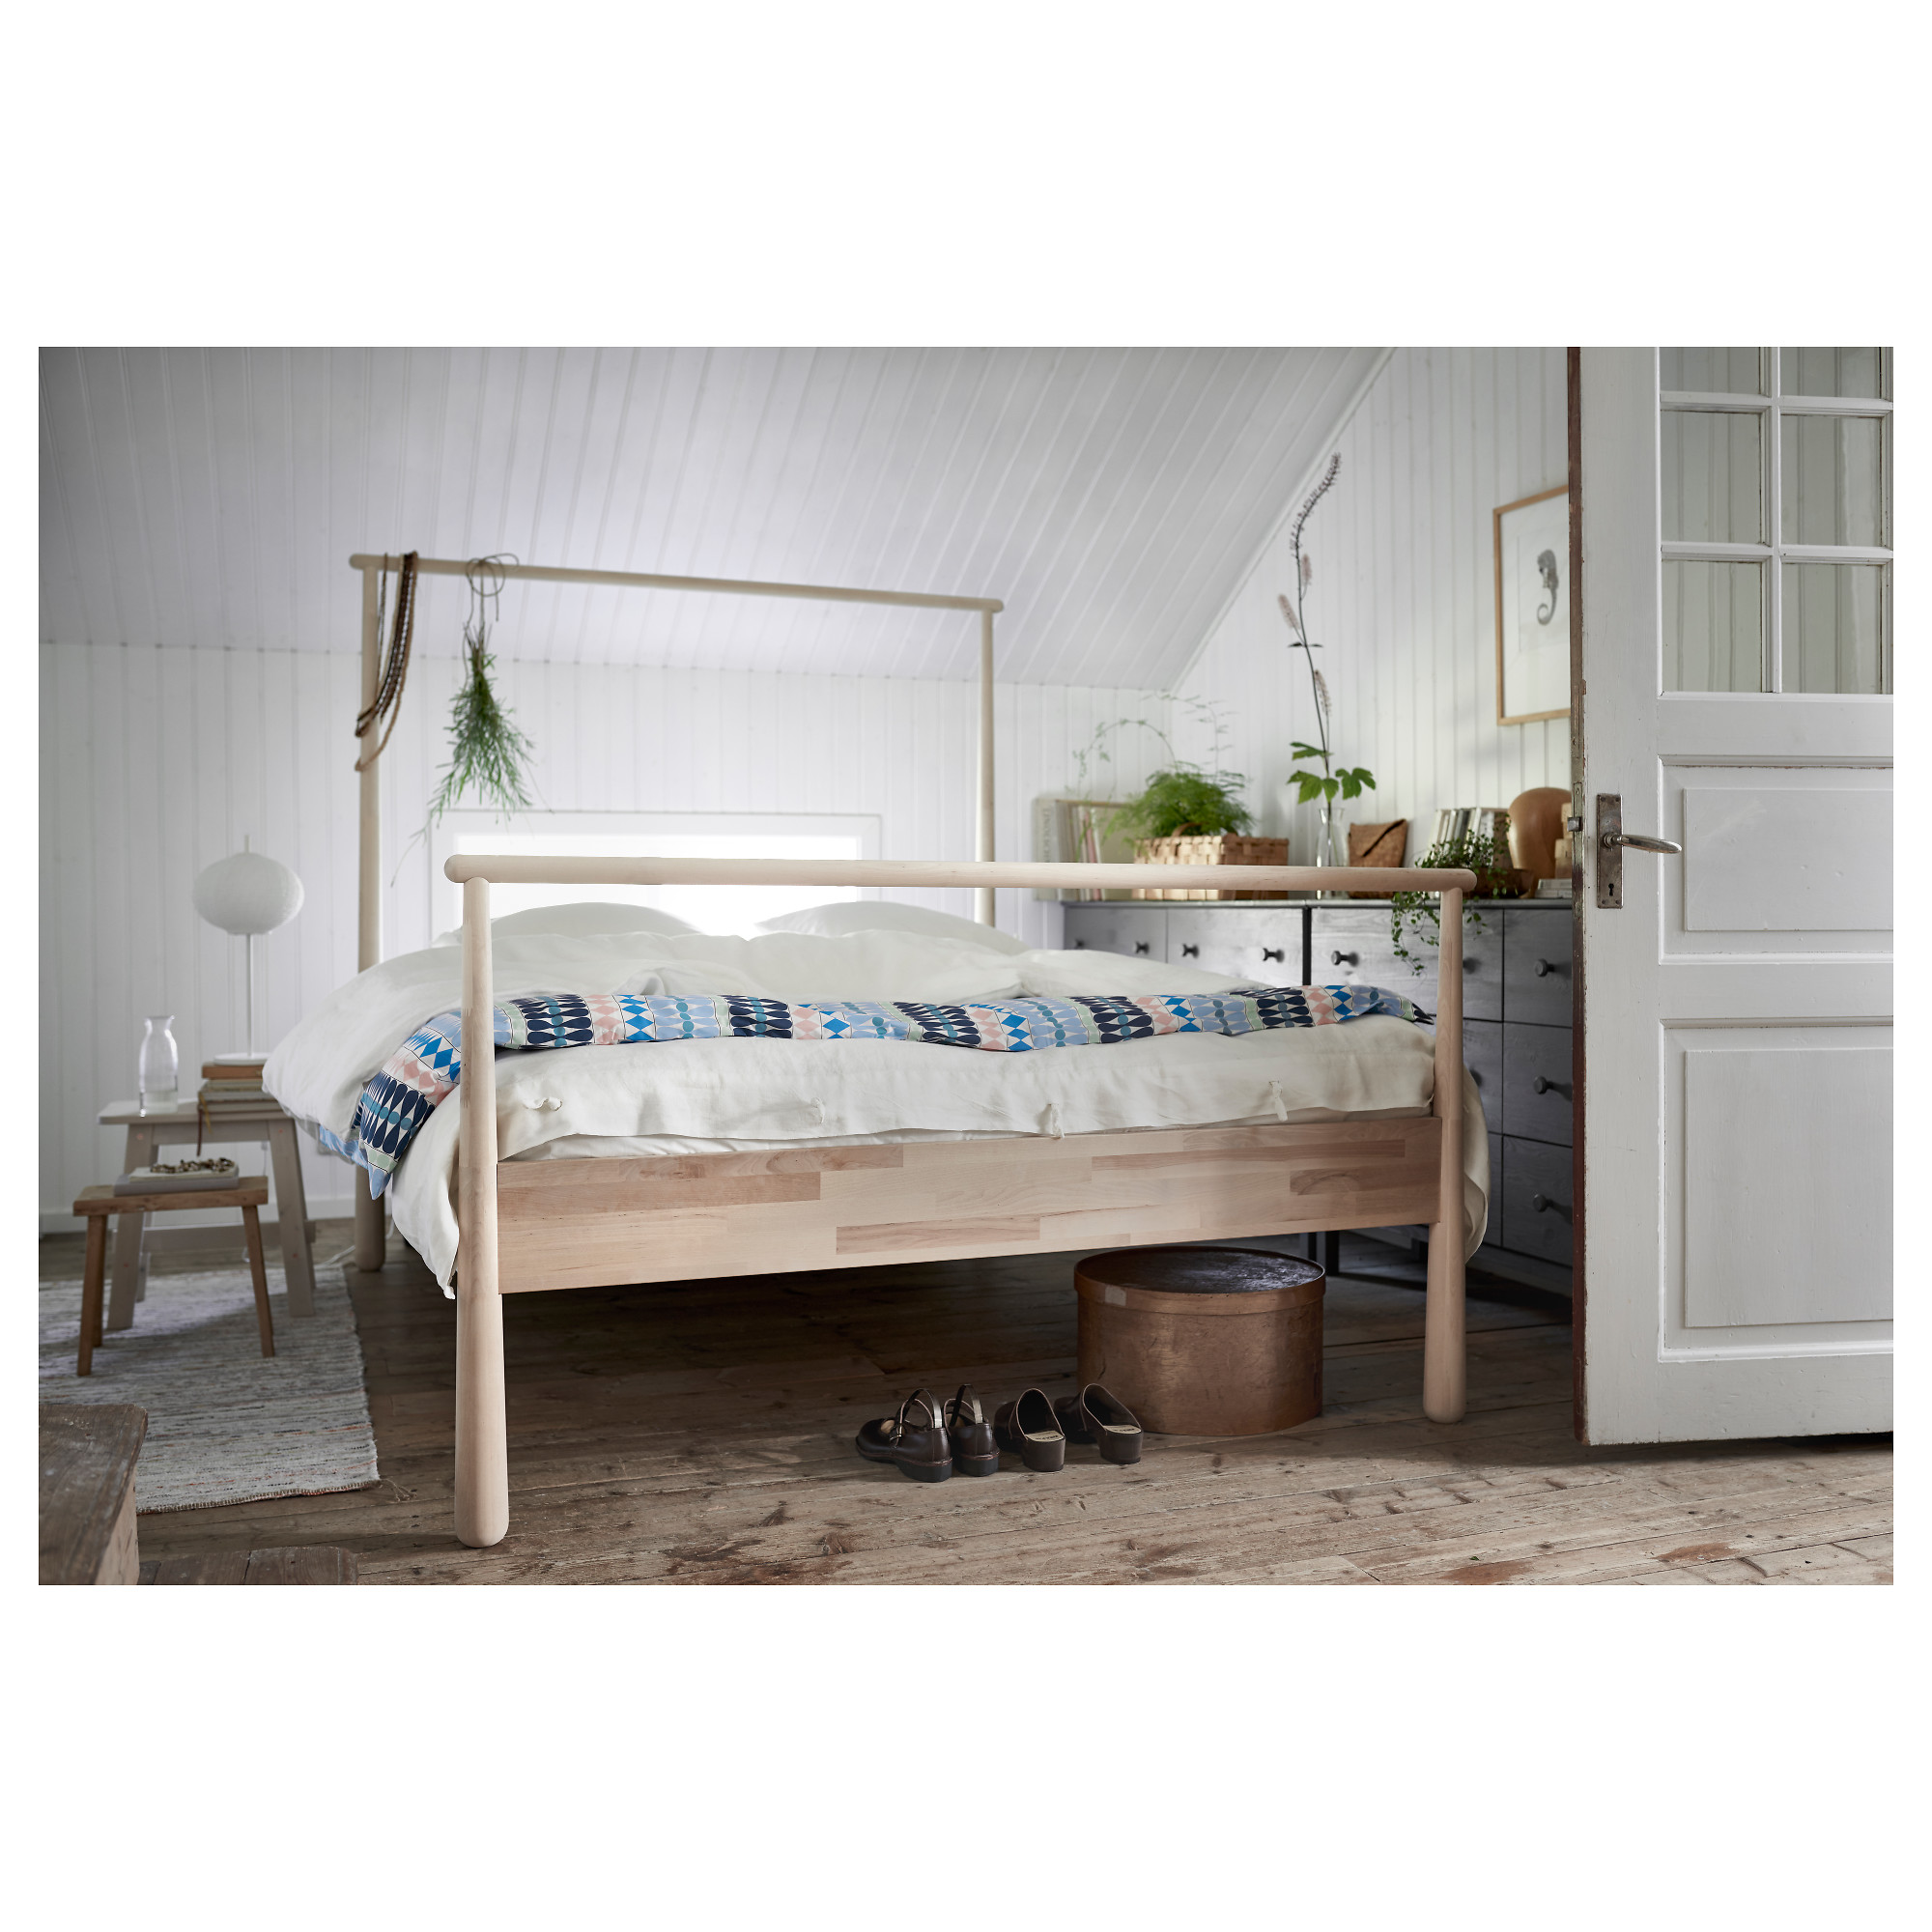 GJ–RA Bed frame Full Double IKEA